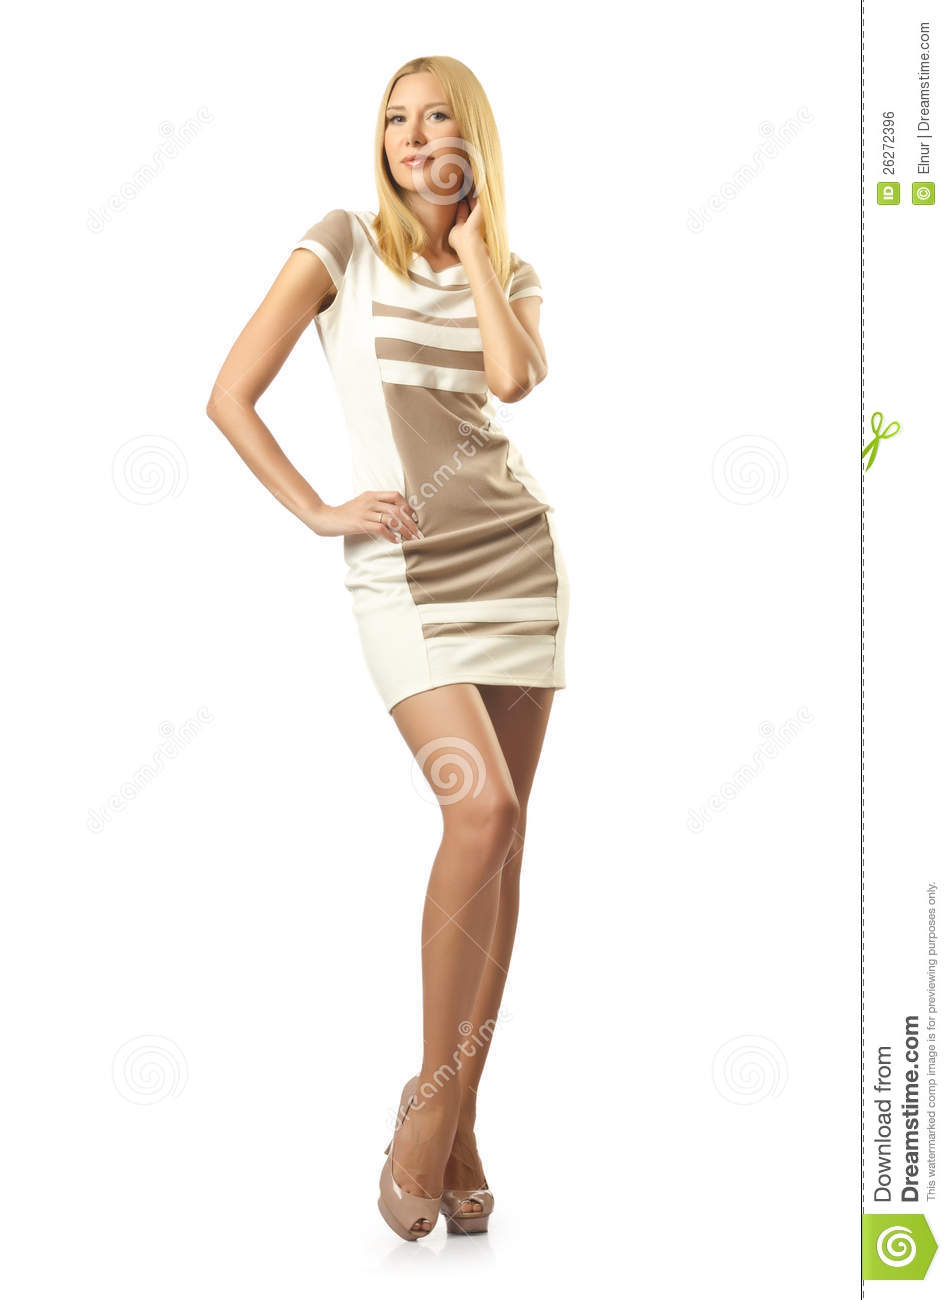 Tall Model On White Royalty Free Stock Image - Image: 26272396